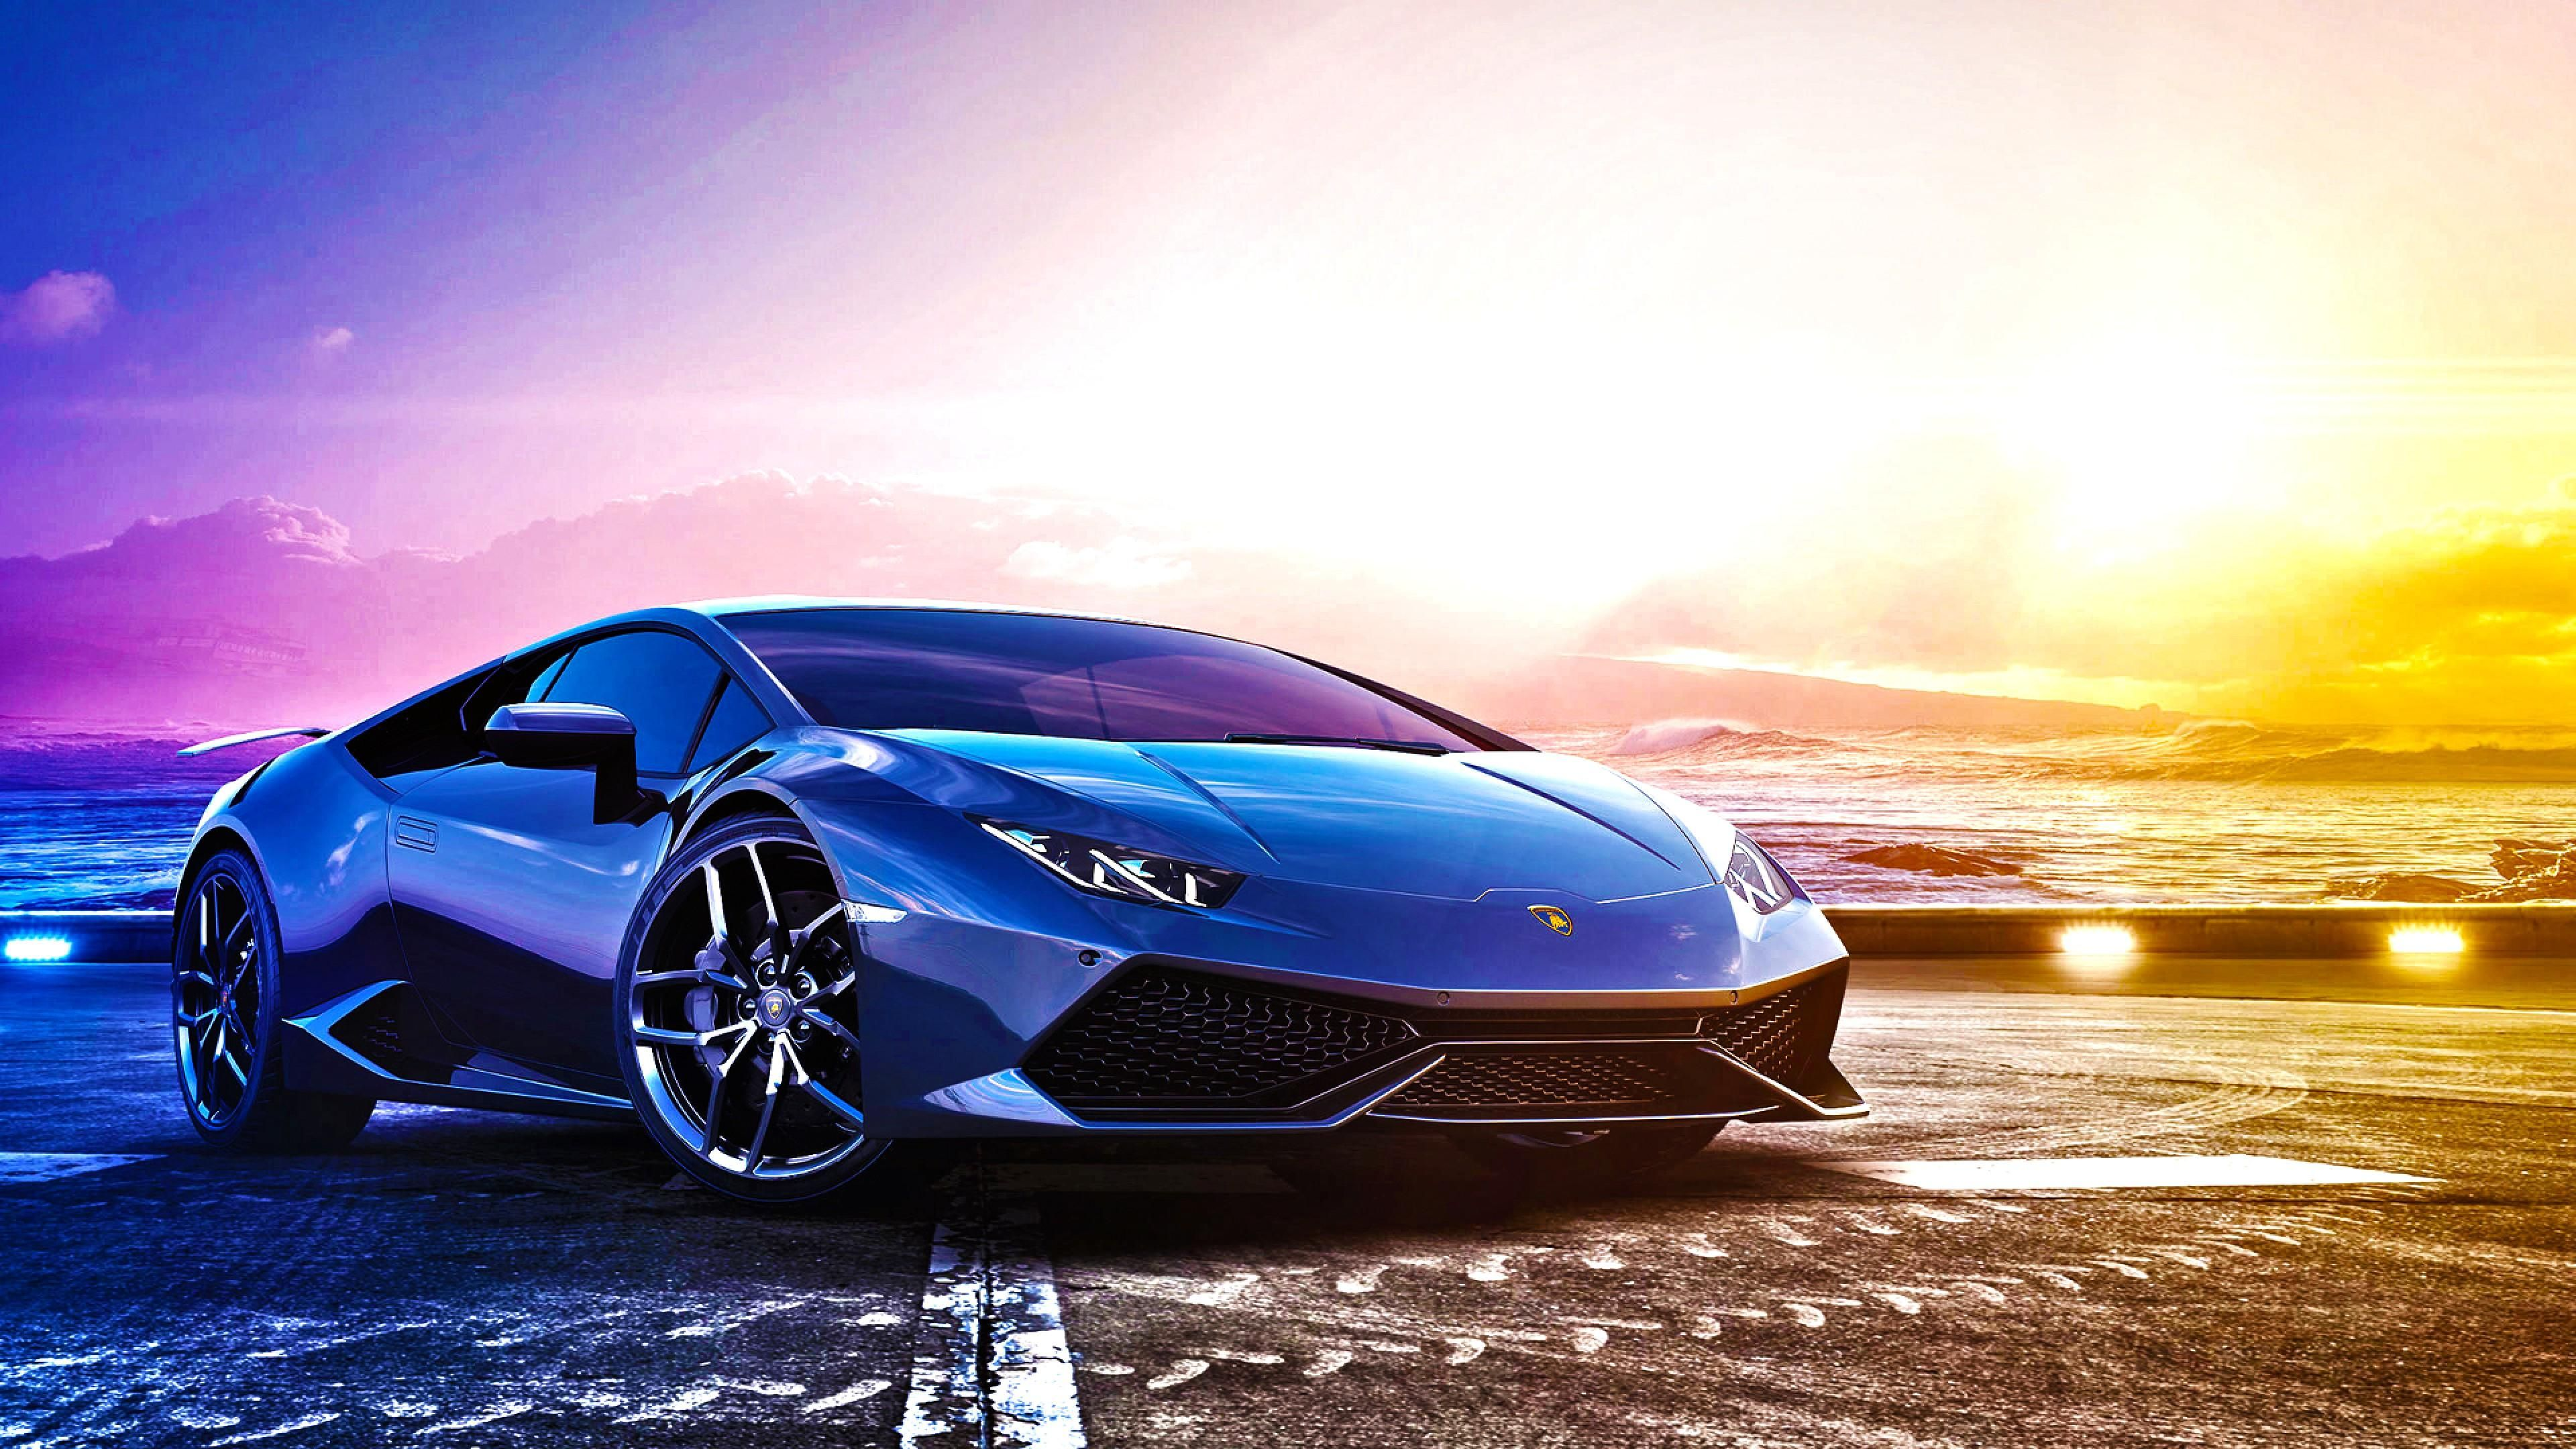 A potential prototype lamborghini aventador has been spotted with some extreme aero aids. Blue Lamborghini Aventador 4k Wallpaper Lamborghini Wallpapers Lamborghini Aventador Wal Lamborghini Aventador Wallpaper Lamborghini Pictures Blue Lamborghini